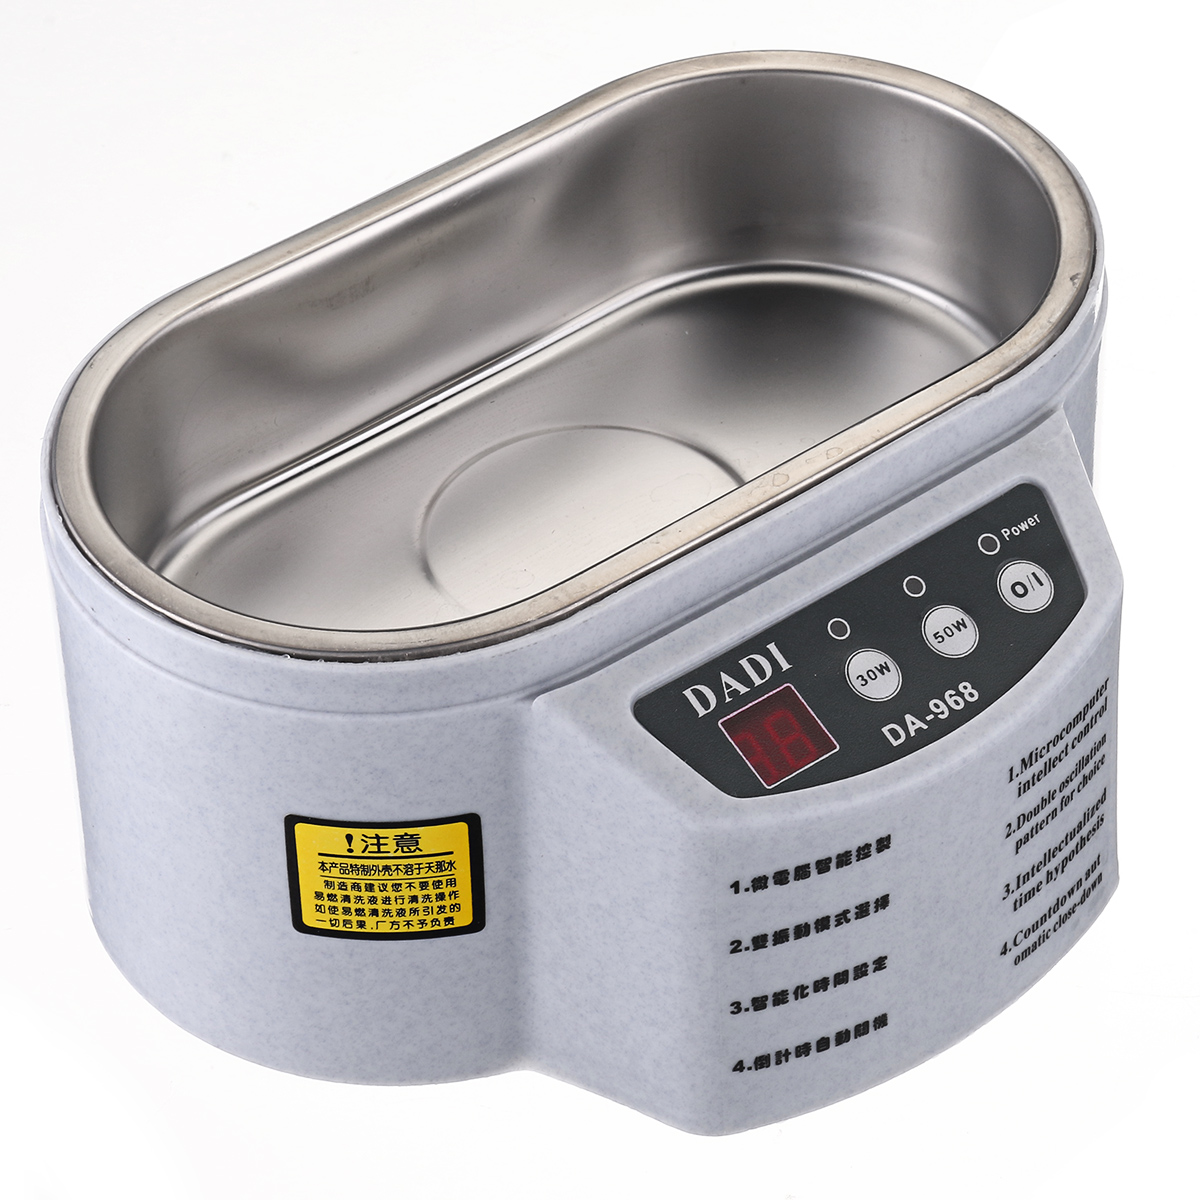 Mini Ultrasonic Cleaner Bath Machine For Cleaning Jewelry Glasses Oscillatory Circuit An Device With Feedback C3a449aa D6f3 4721 9135 0adf342c45ac